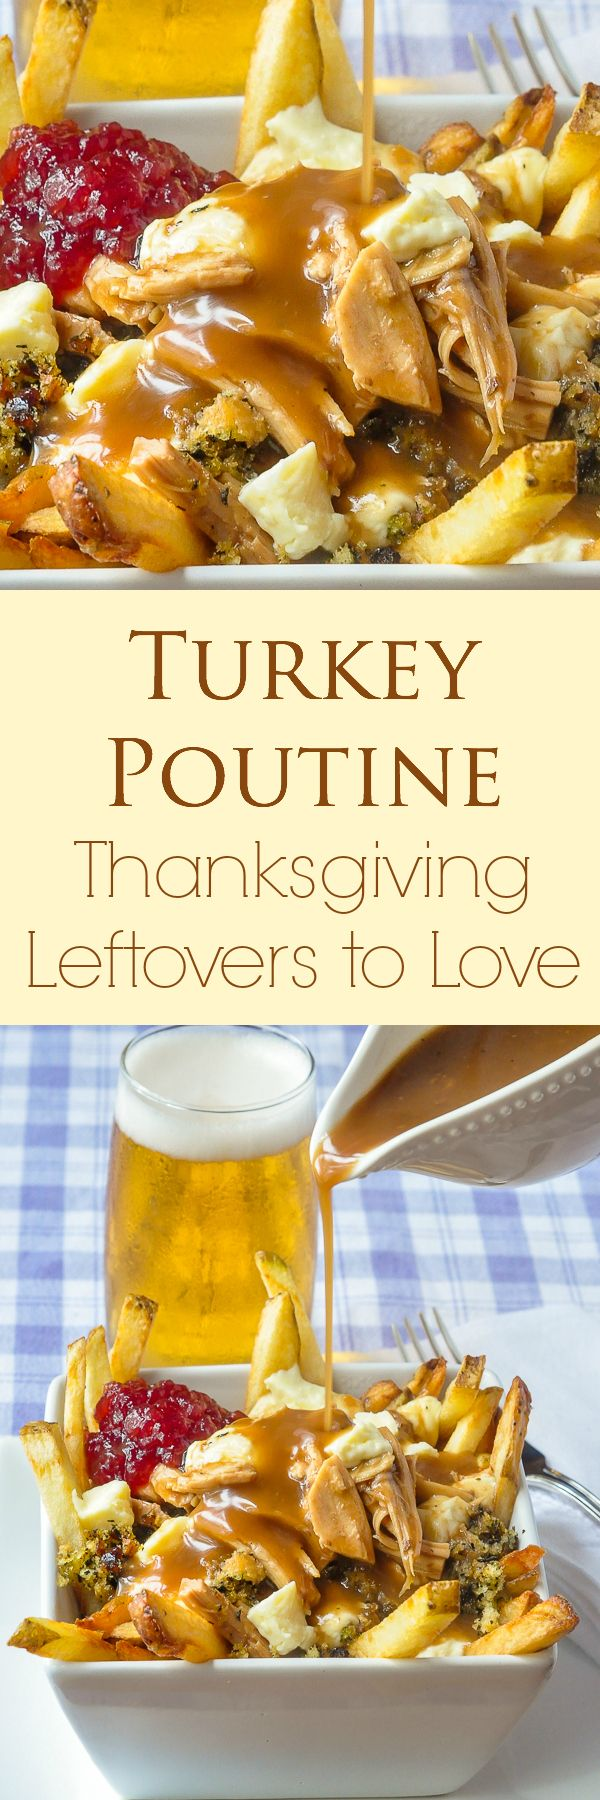 Turkey Poutine - this take on the classic French Canadian dish of french fries, cheese curds and gravy with the addition of leftover stuffing and cranberry sauce will have you eagerly anticipating the day after the big turkey dinner. : rockrecipes